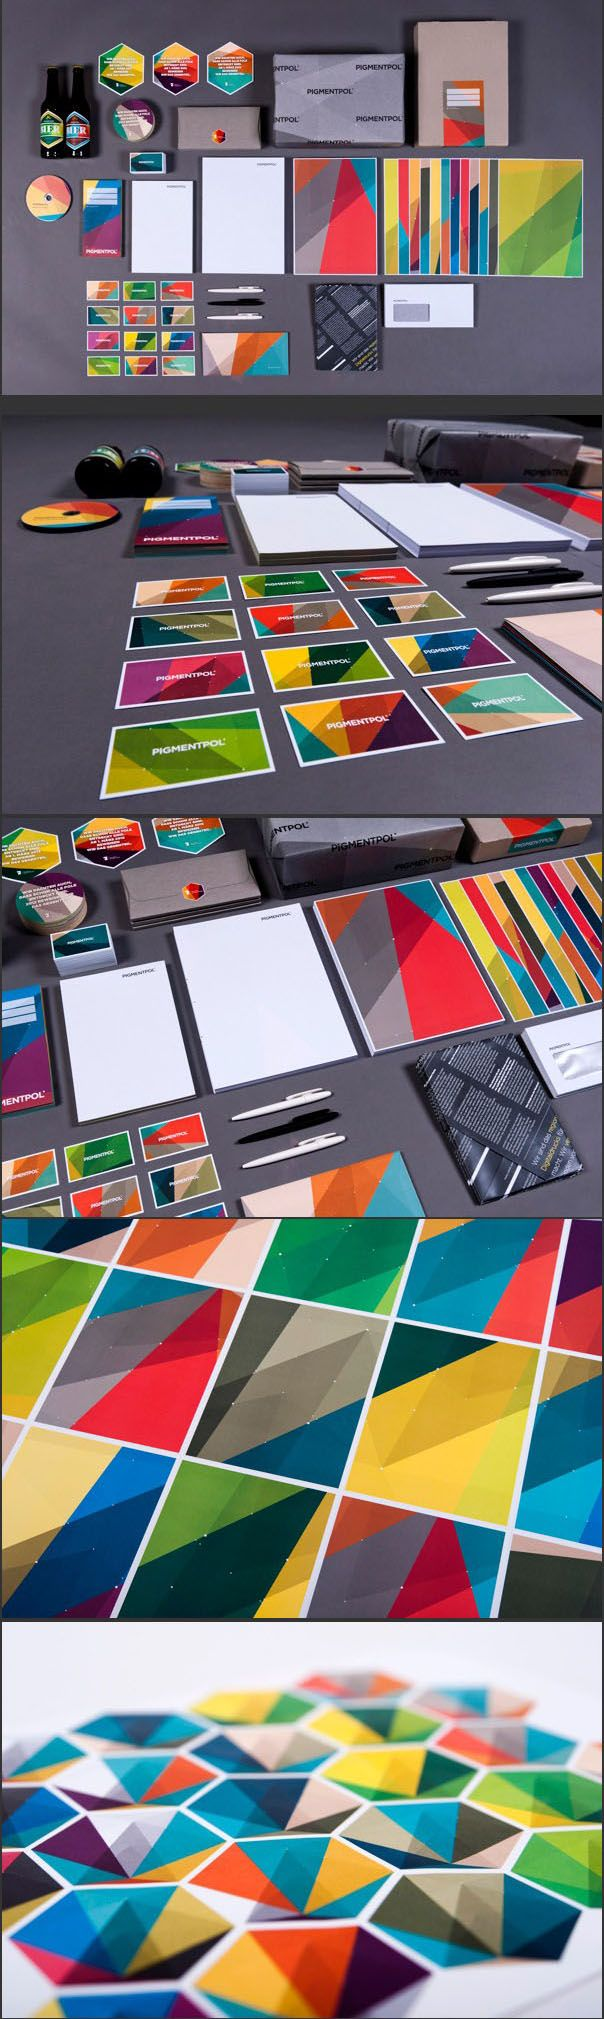 25 Creative Corporate Identity and Branding Design examples | Read full article: http://webneel.com/corporate-identity-branding | more http://webneel.com/branding-designs | Follow us www.pinterest.com/webneel